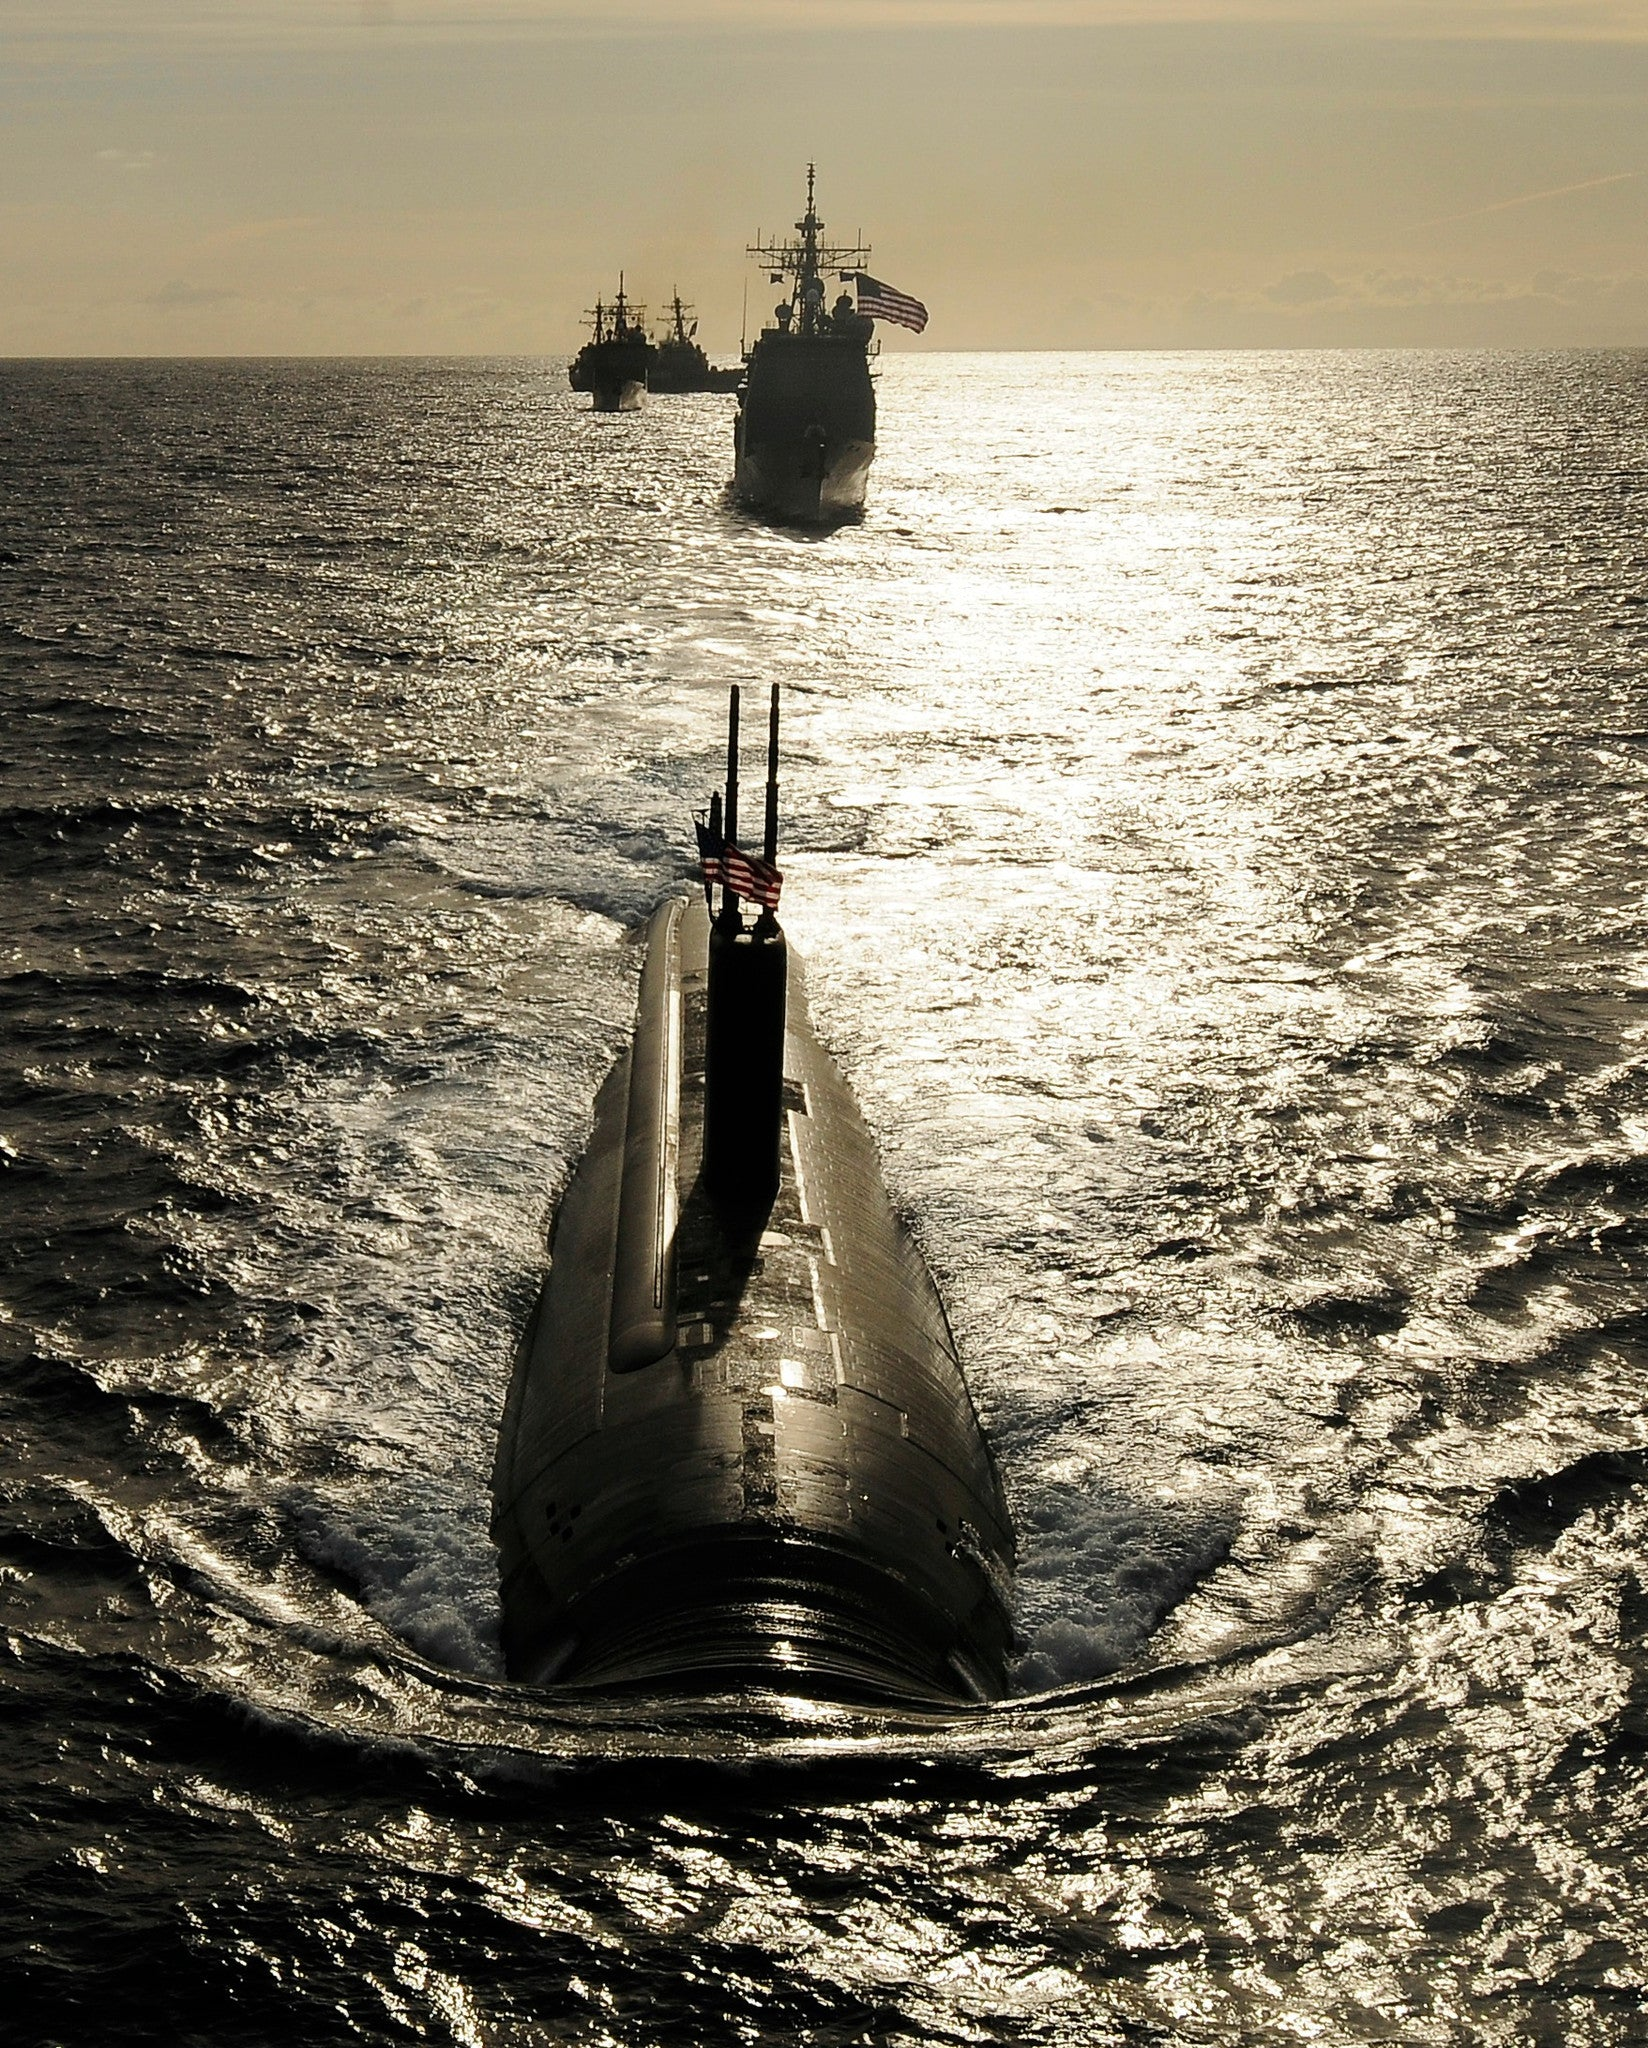 "Submarine USS Tucson SSN-770 Pacific Ocean April 5, 2011 - 8 x 10"" Photograph"